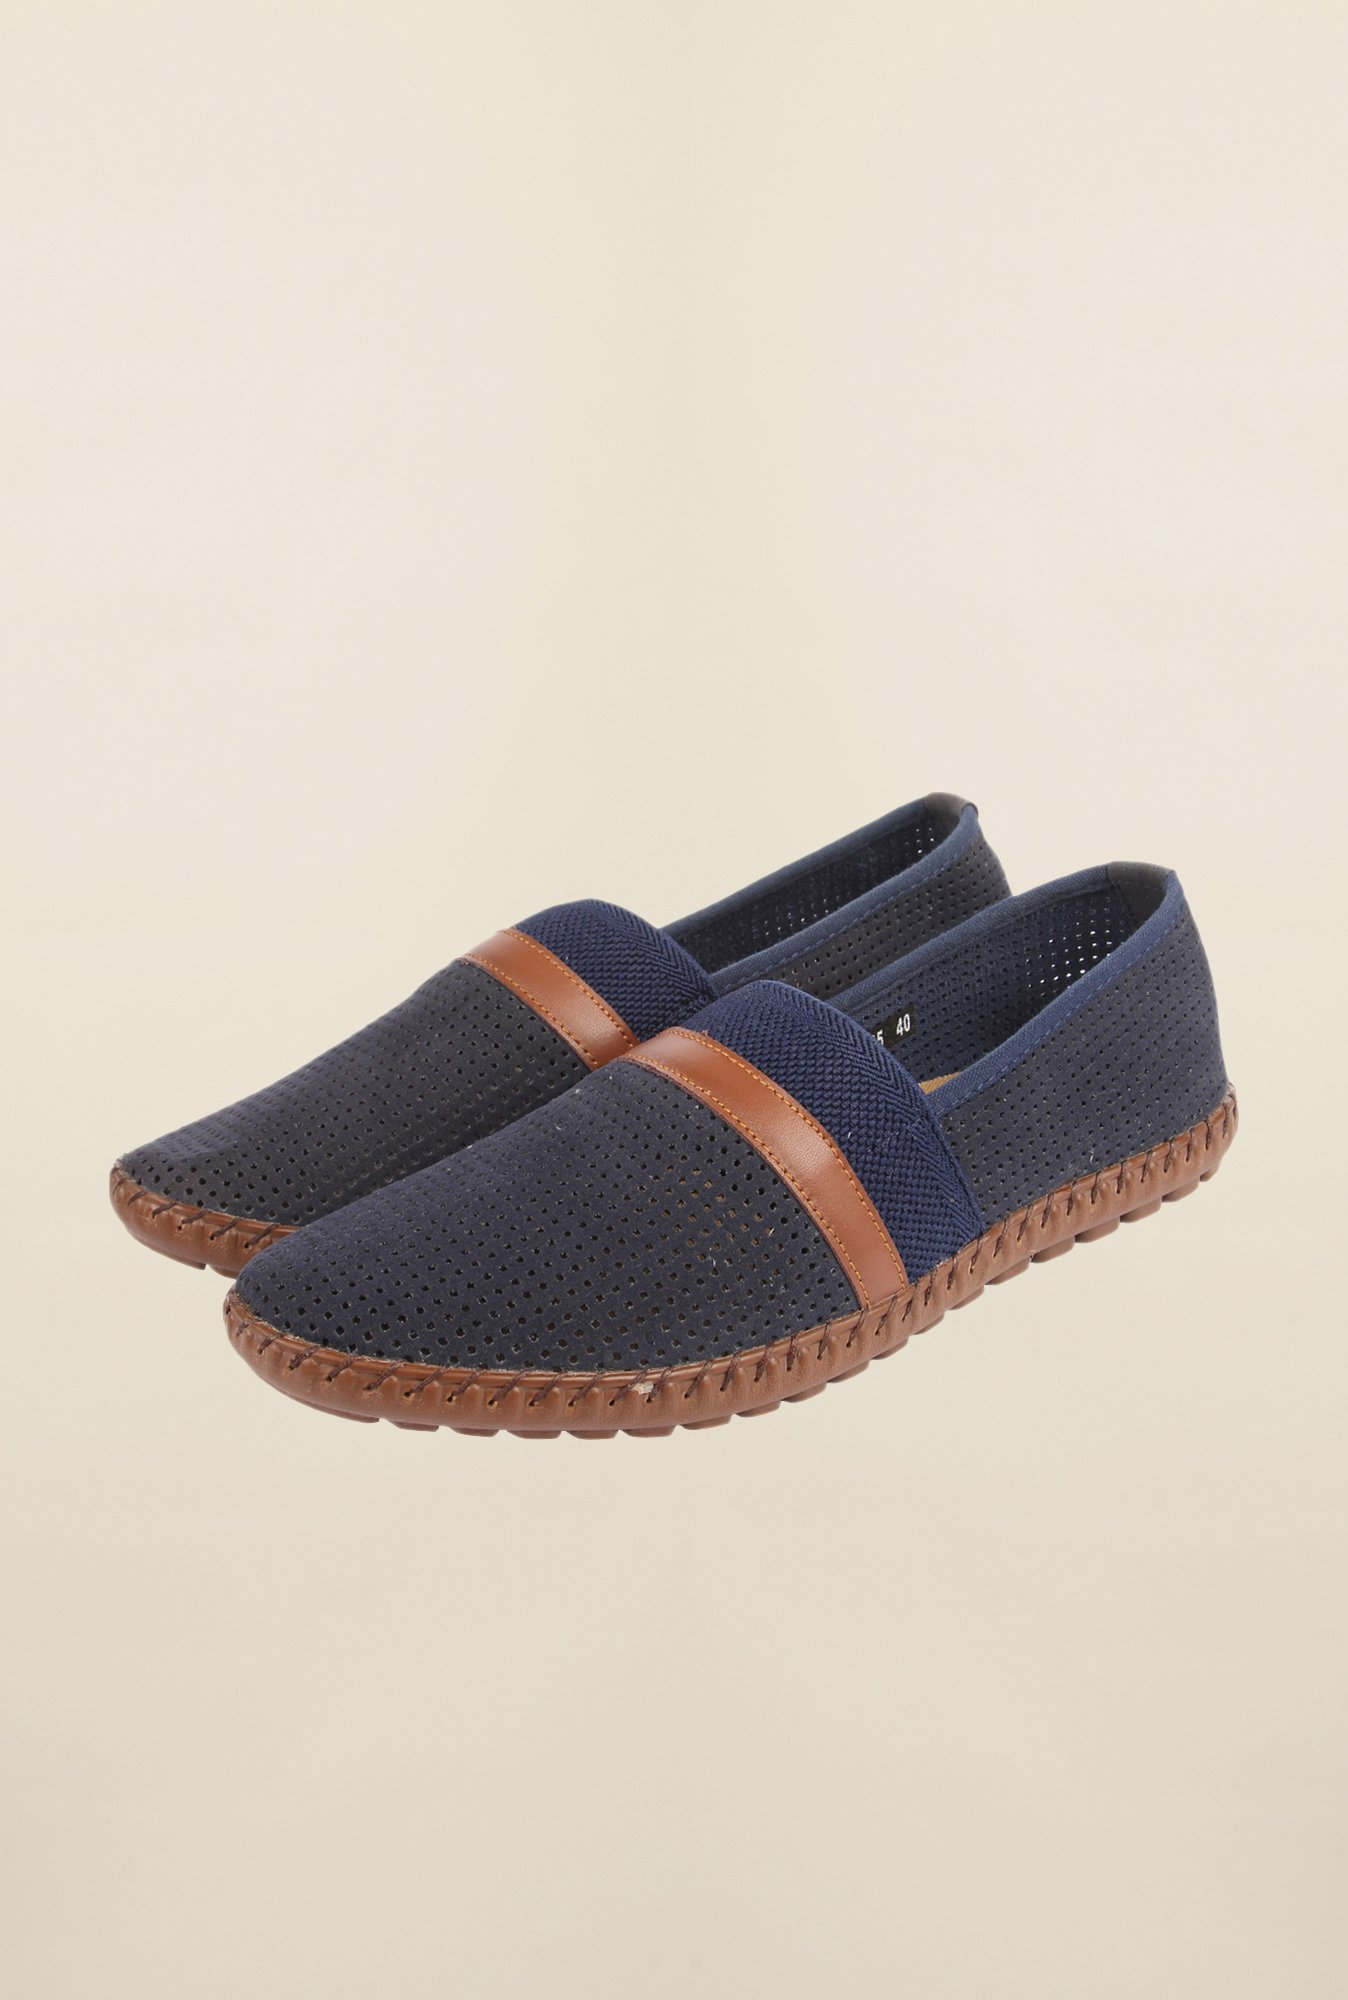 Cobblerz Navy Espadrille Shoes